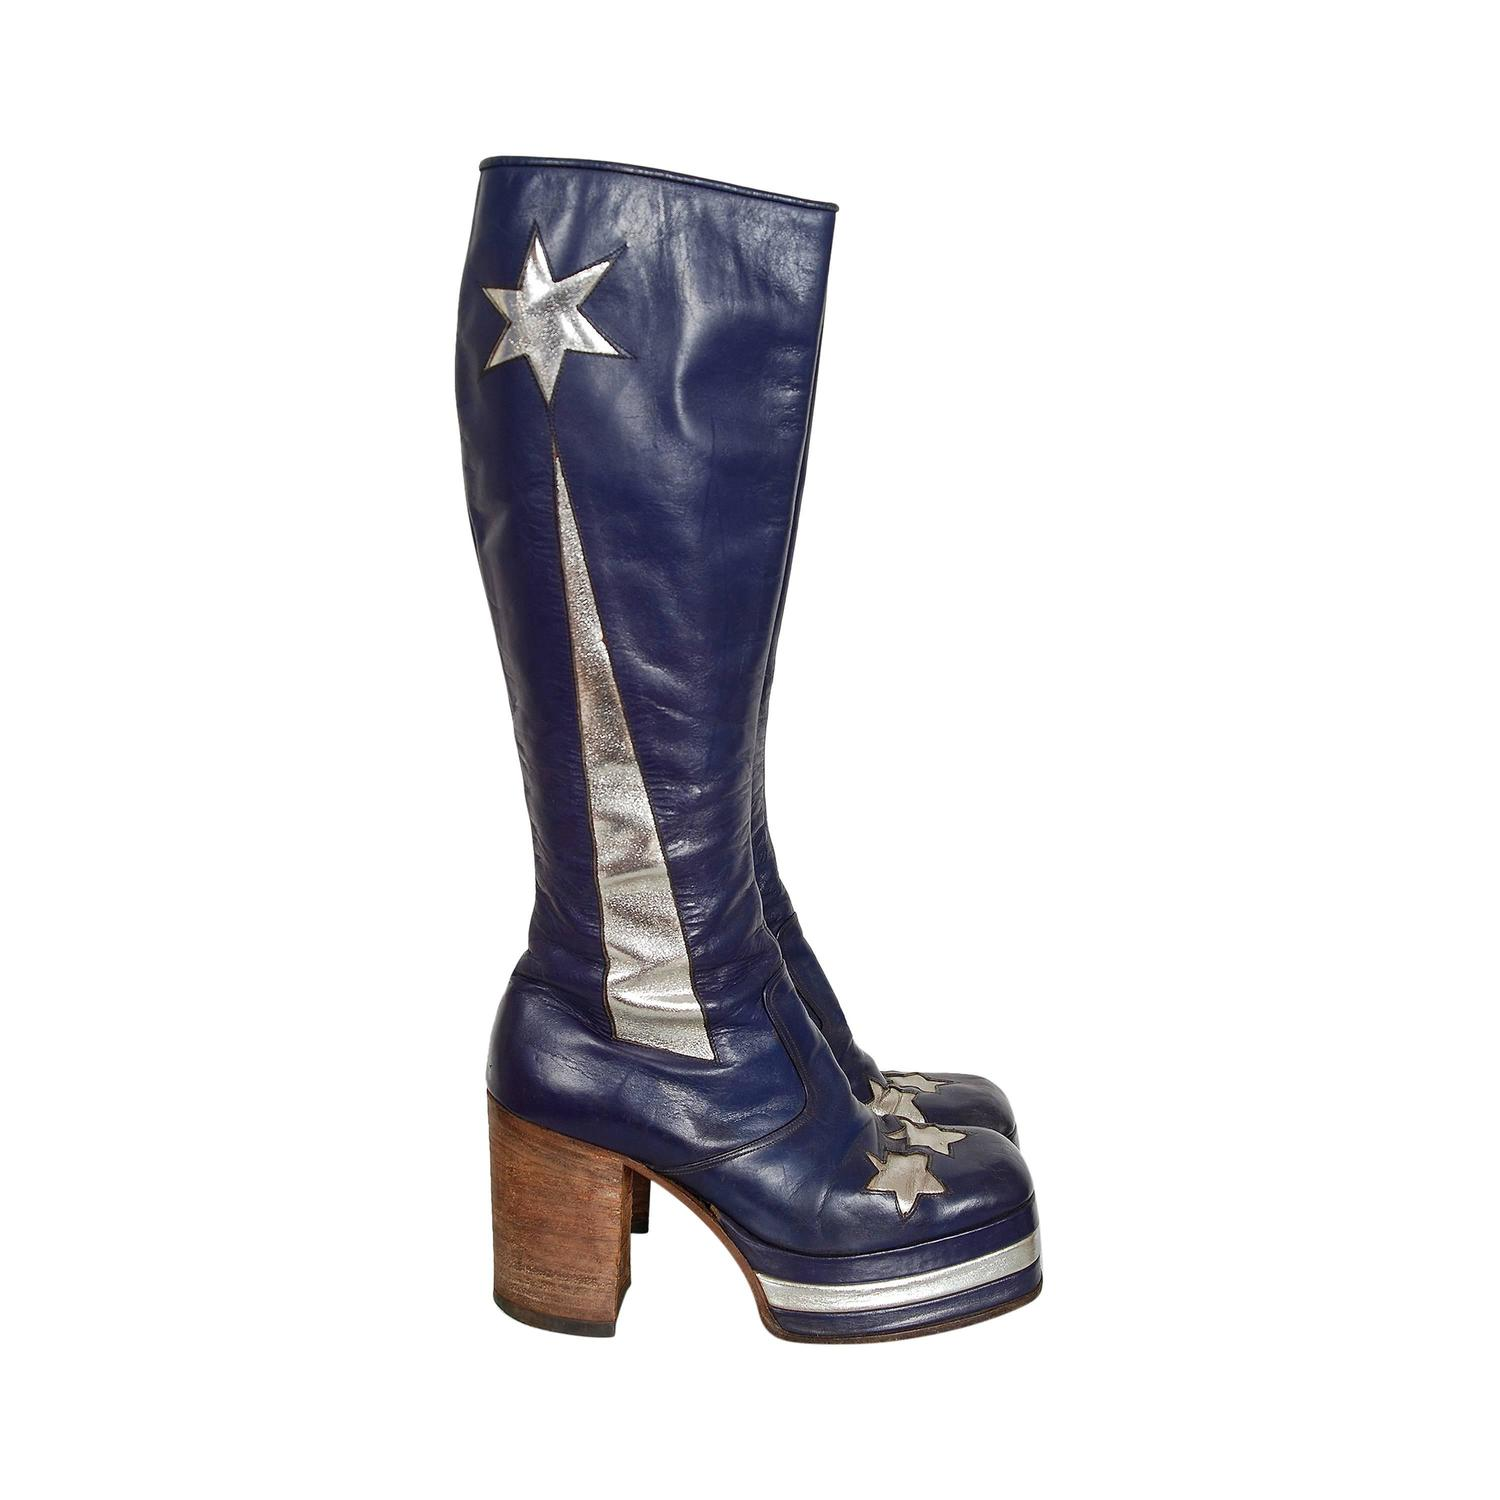 d9c3668d0 1970's Purple and Silver Leather Novelty Stars Knee-High Platform Glam-Rock  Boots at 1stdibs